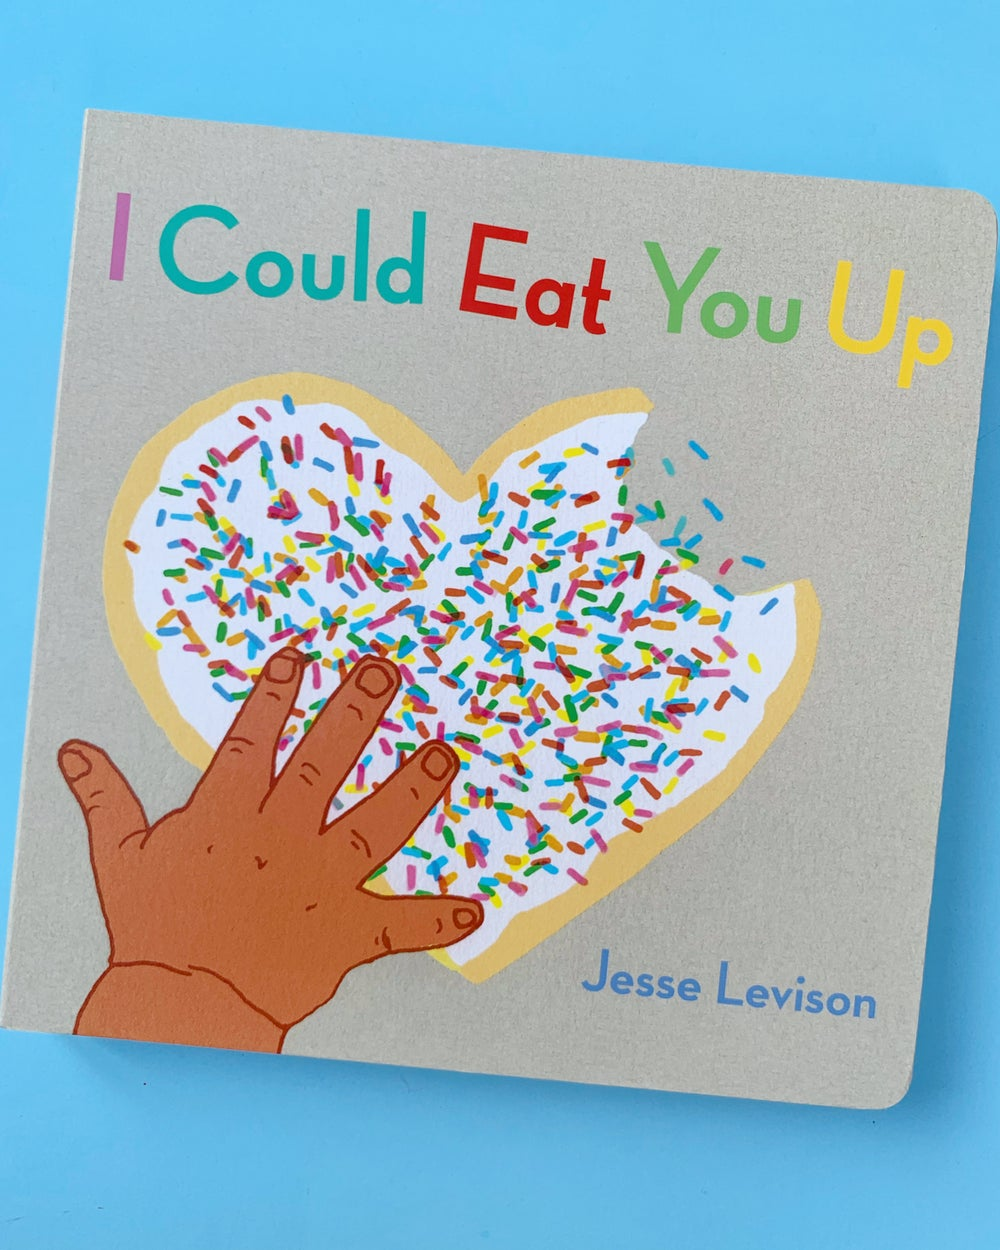 I Could Eat You Up children's book